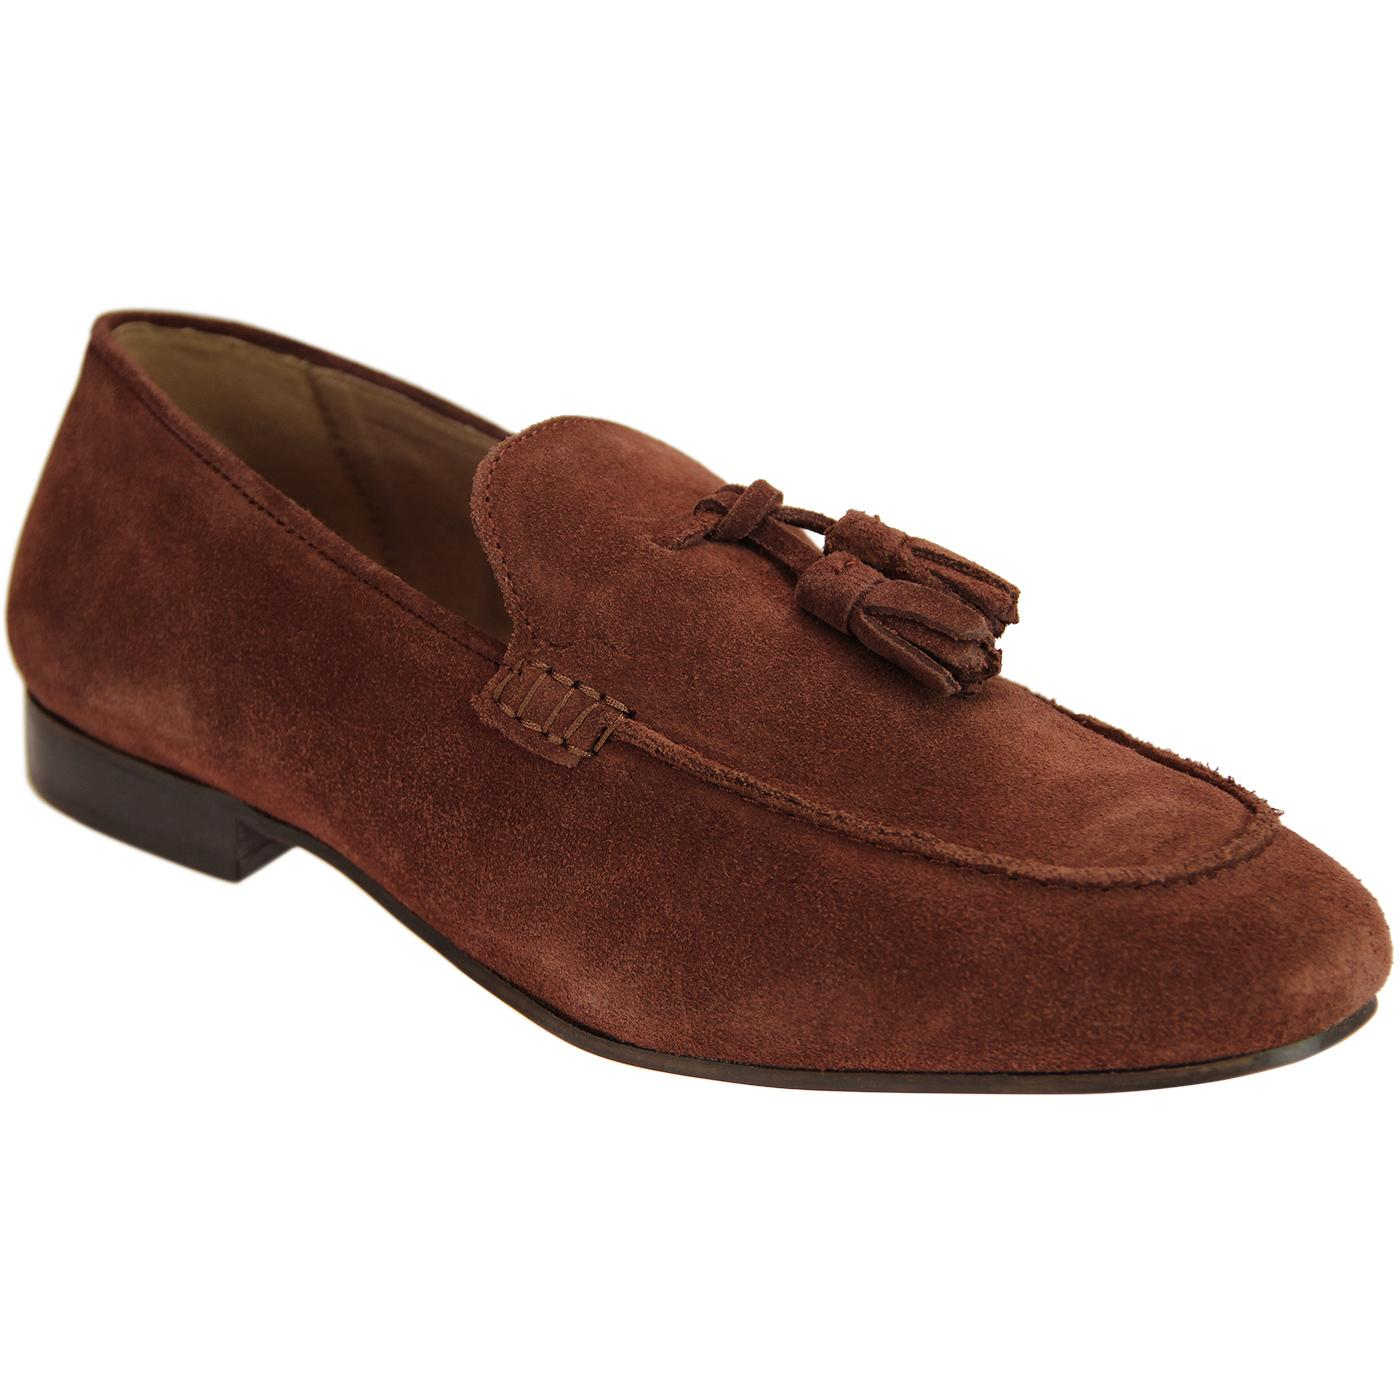 Bolton HUDSON Retro Mod Suede Tassel Loafers RUST